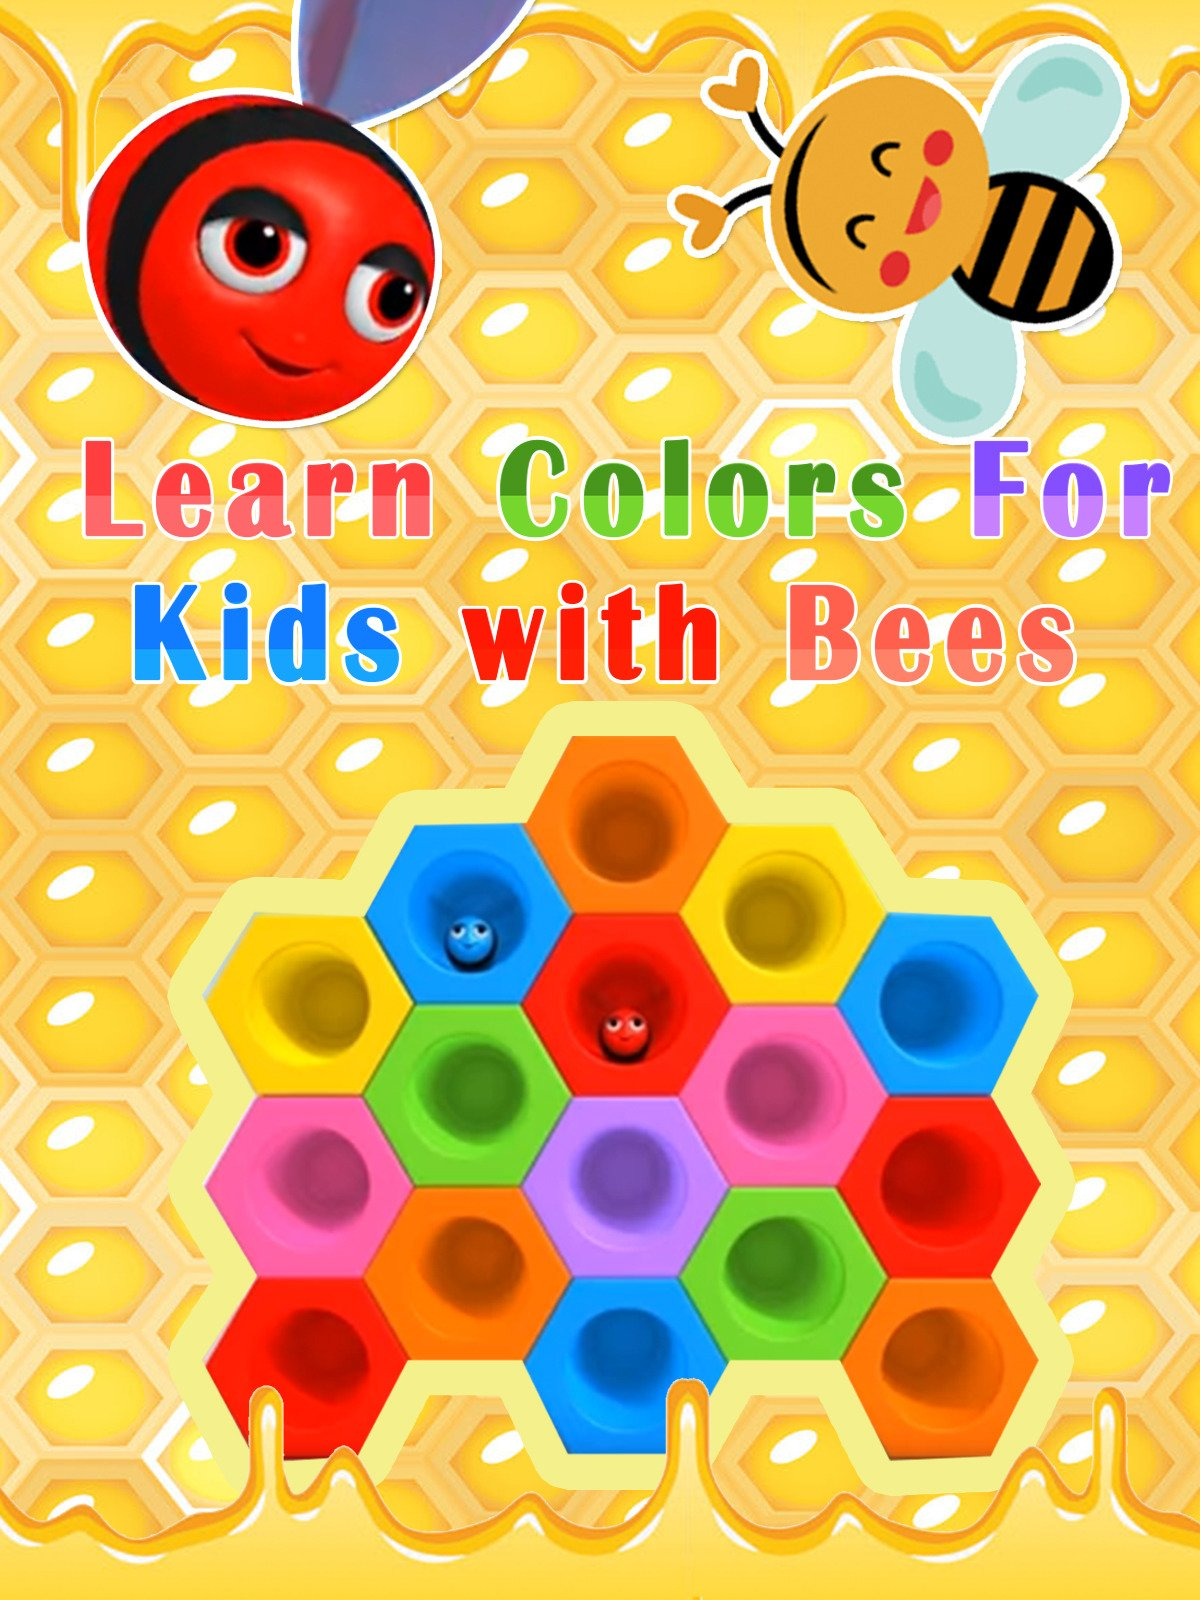 Learn Colors For Kids with Bees